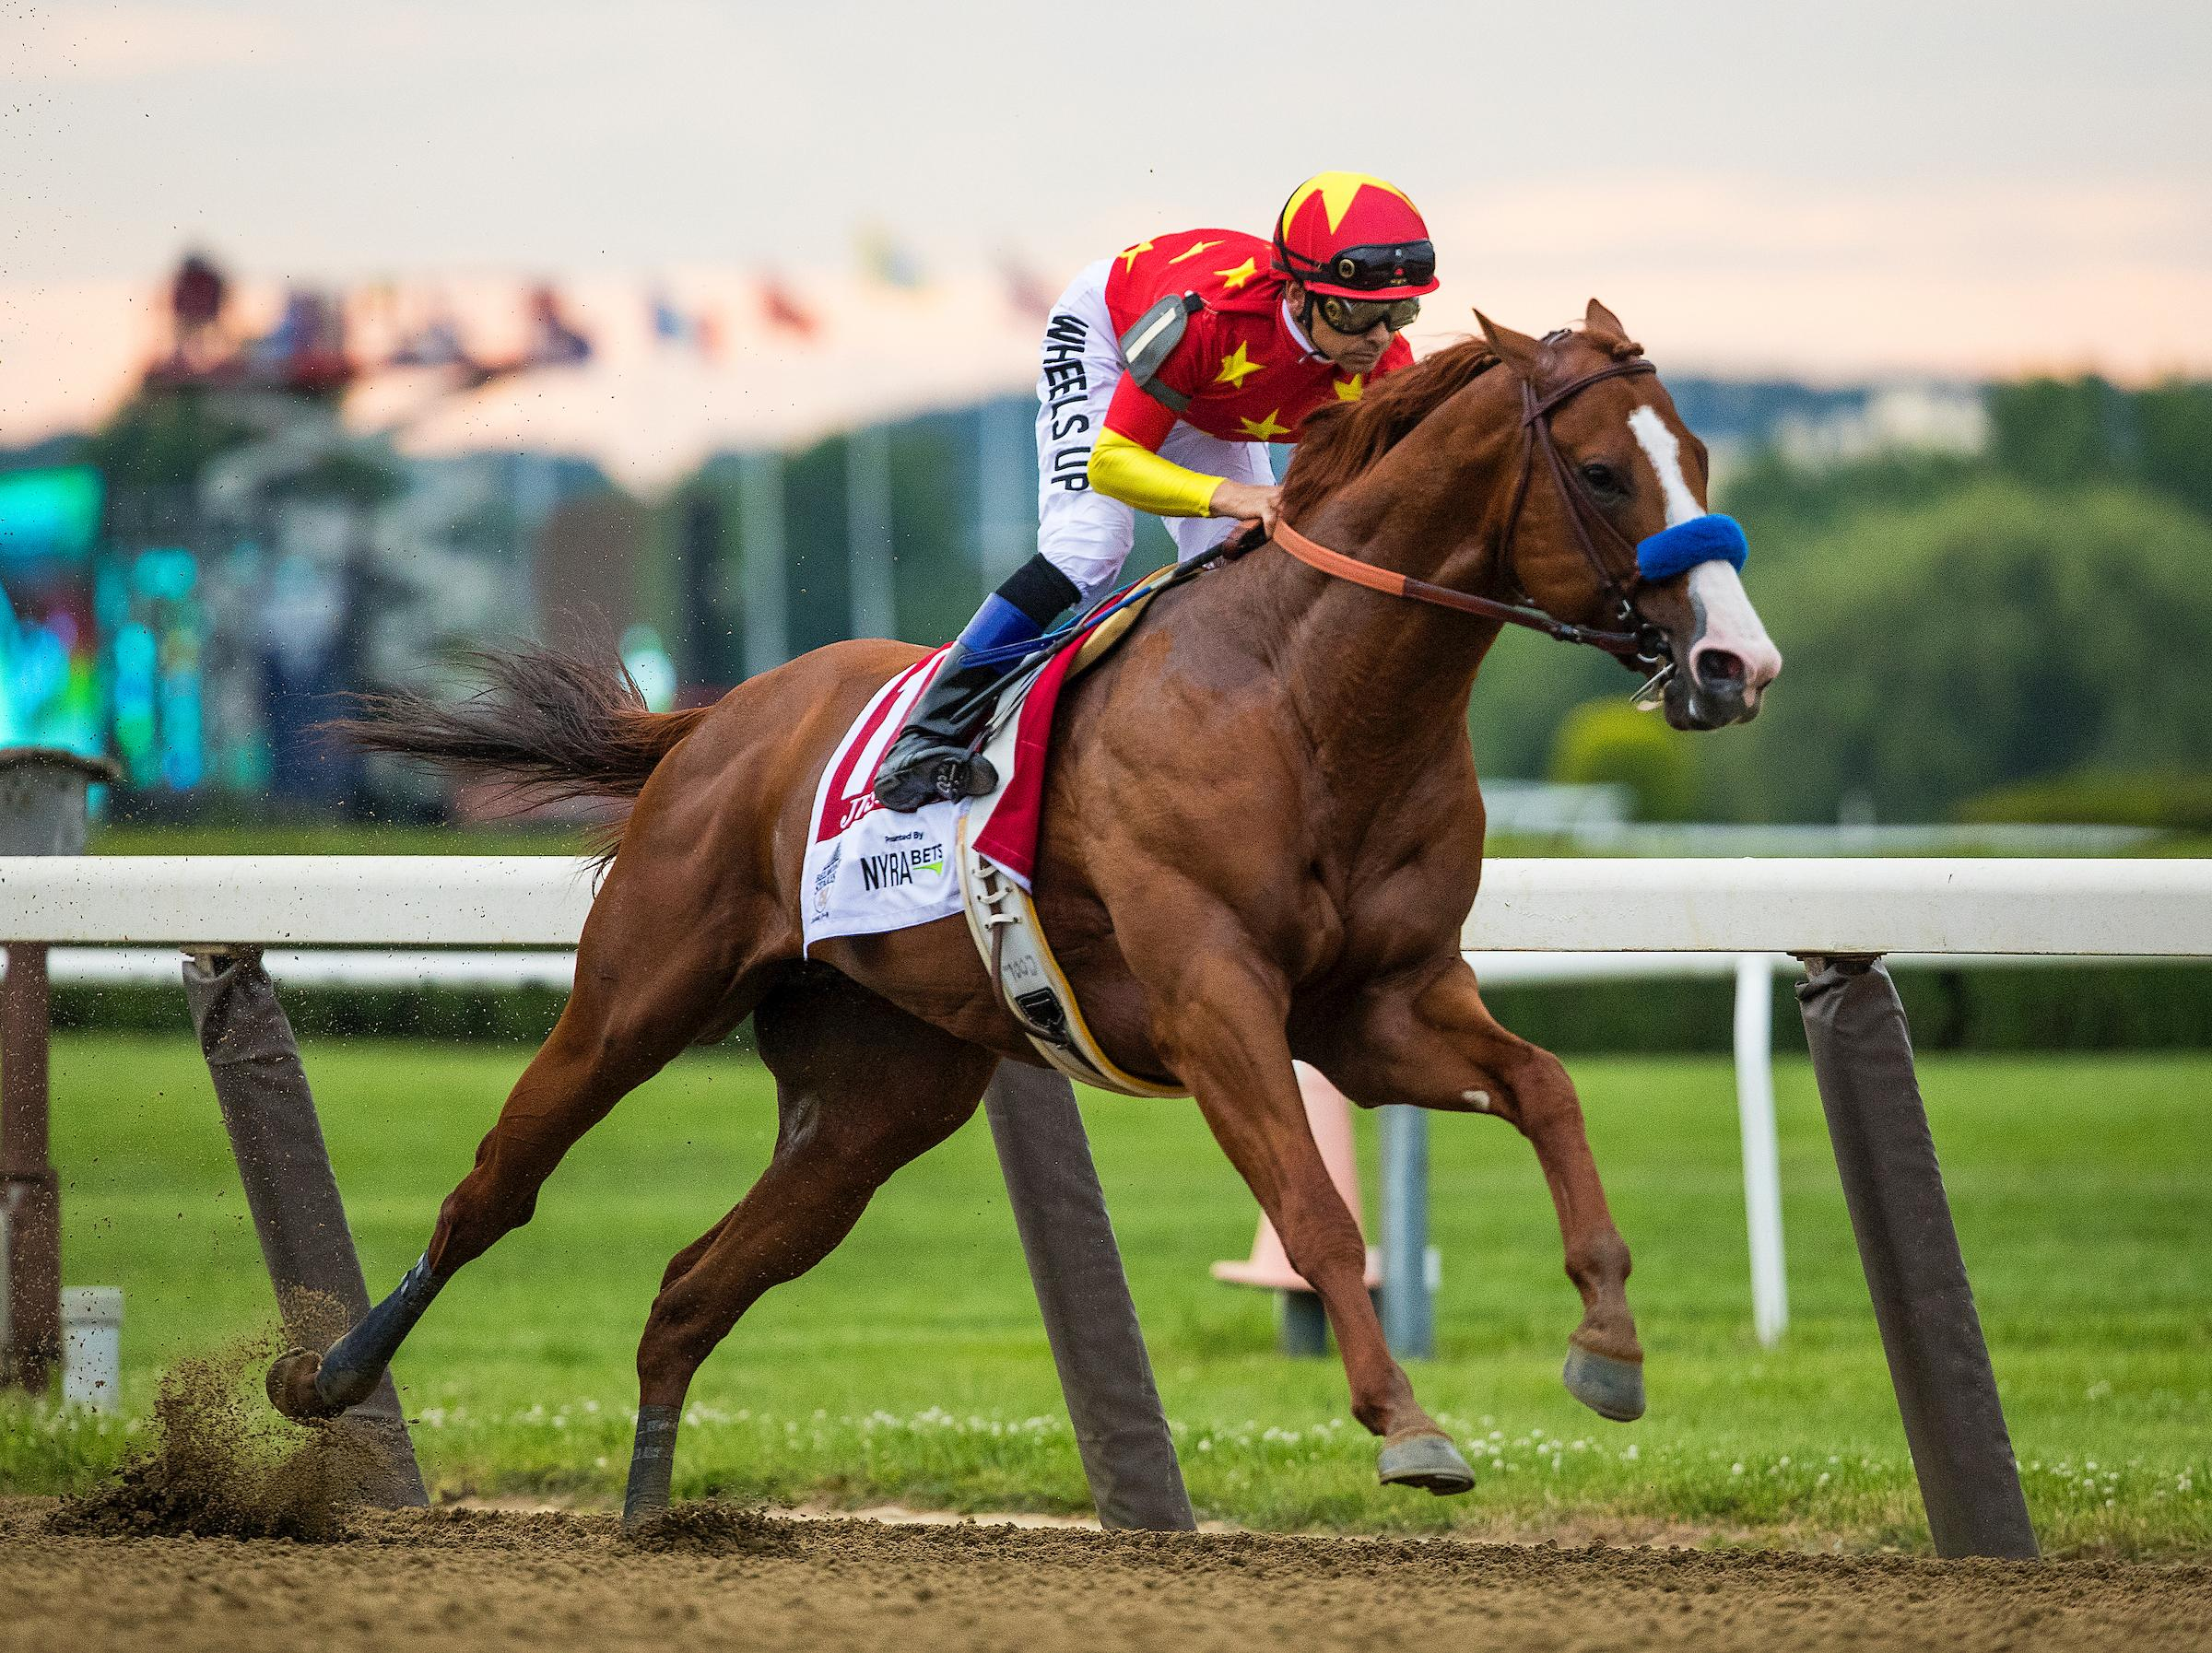 Justify en route to winning the Belmont Stakes.